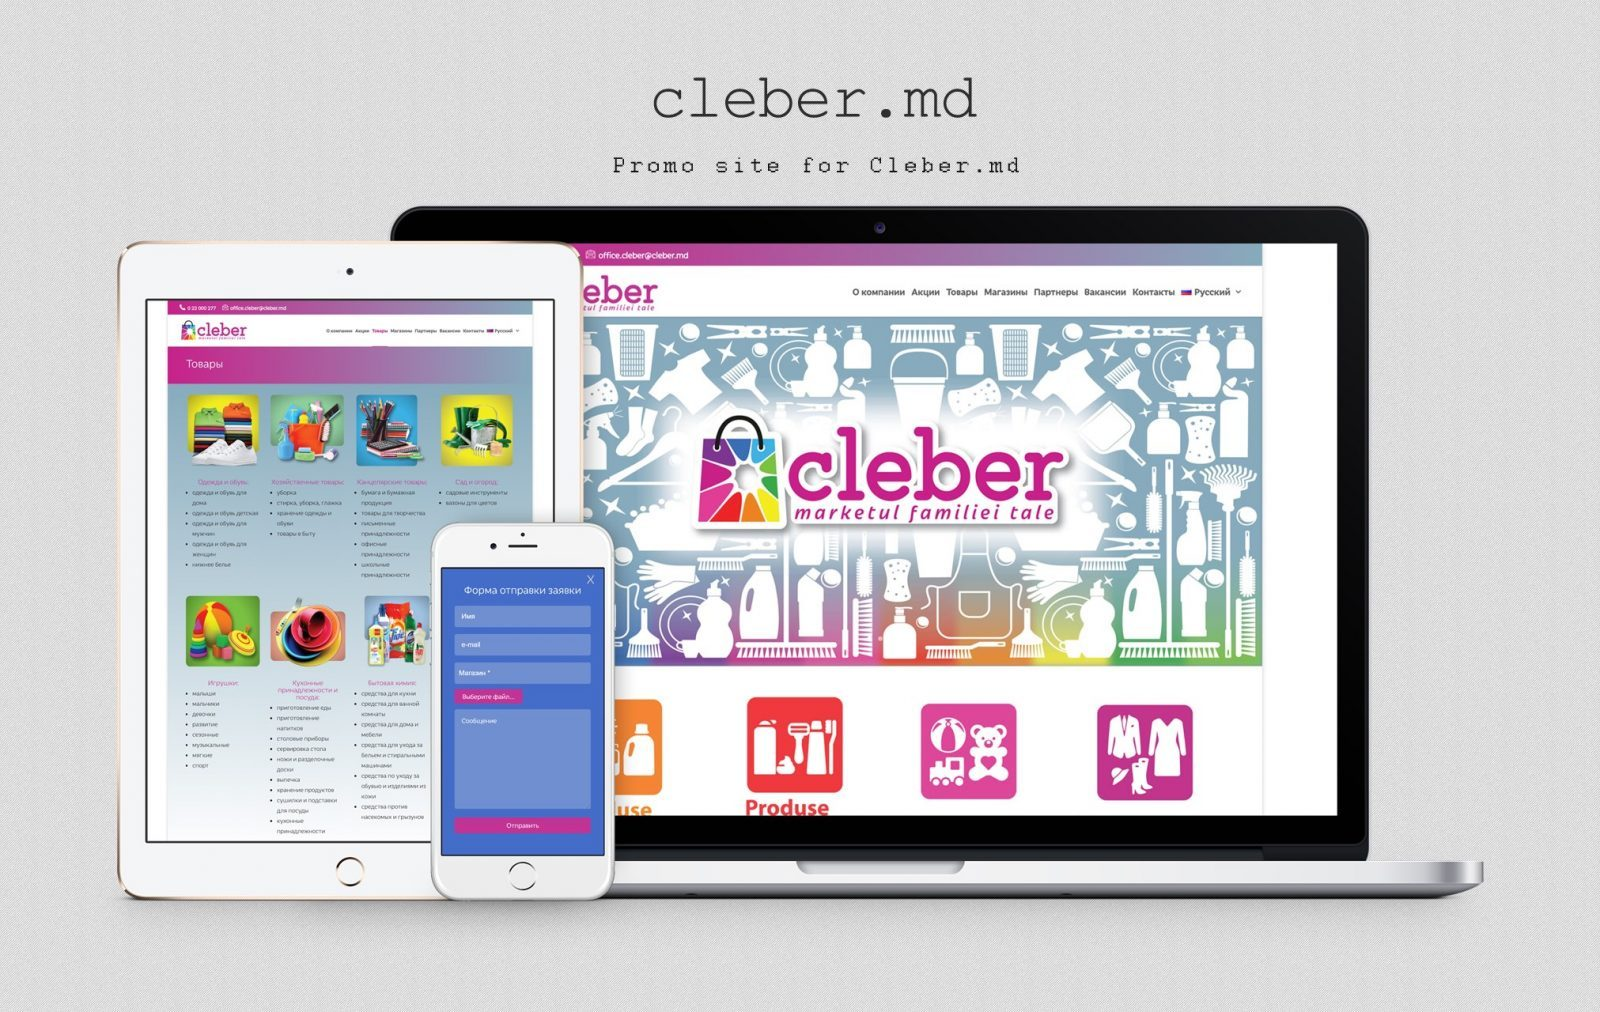 Company Website - Cleber